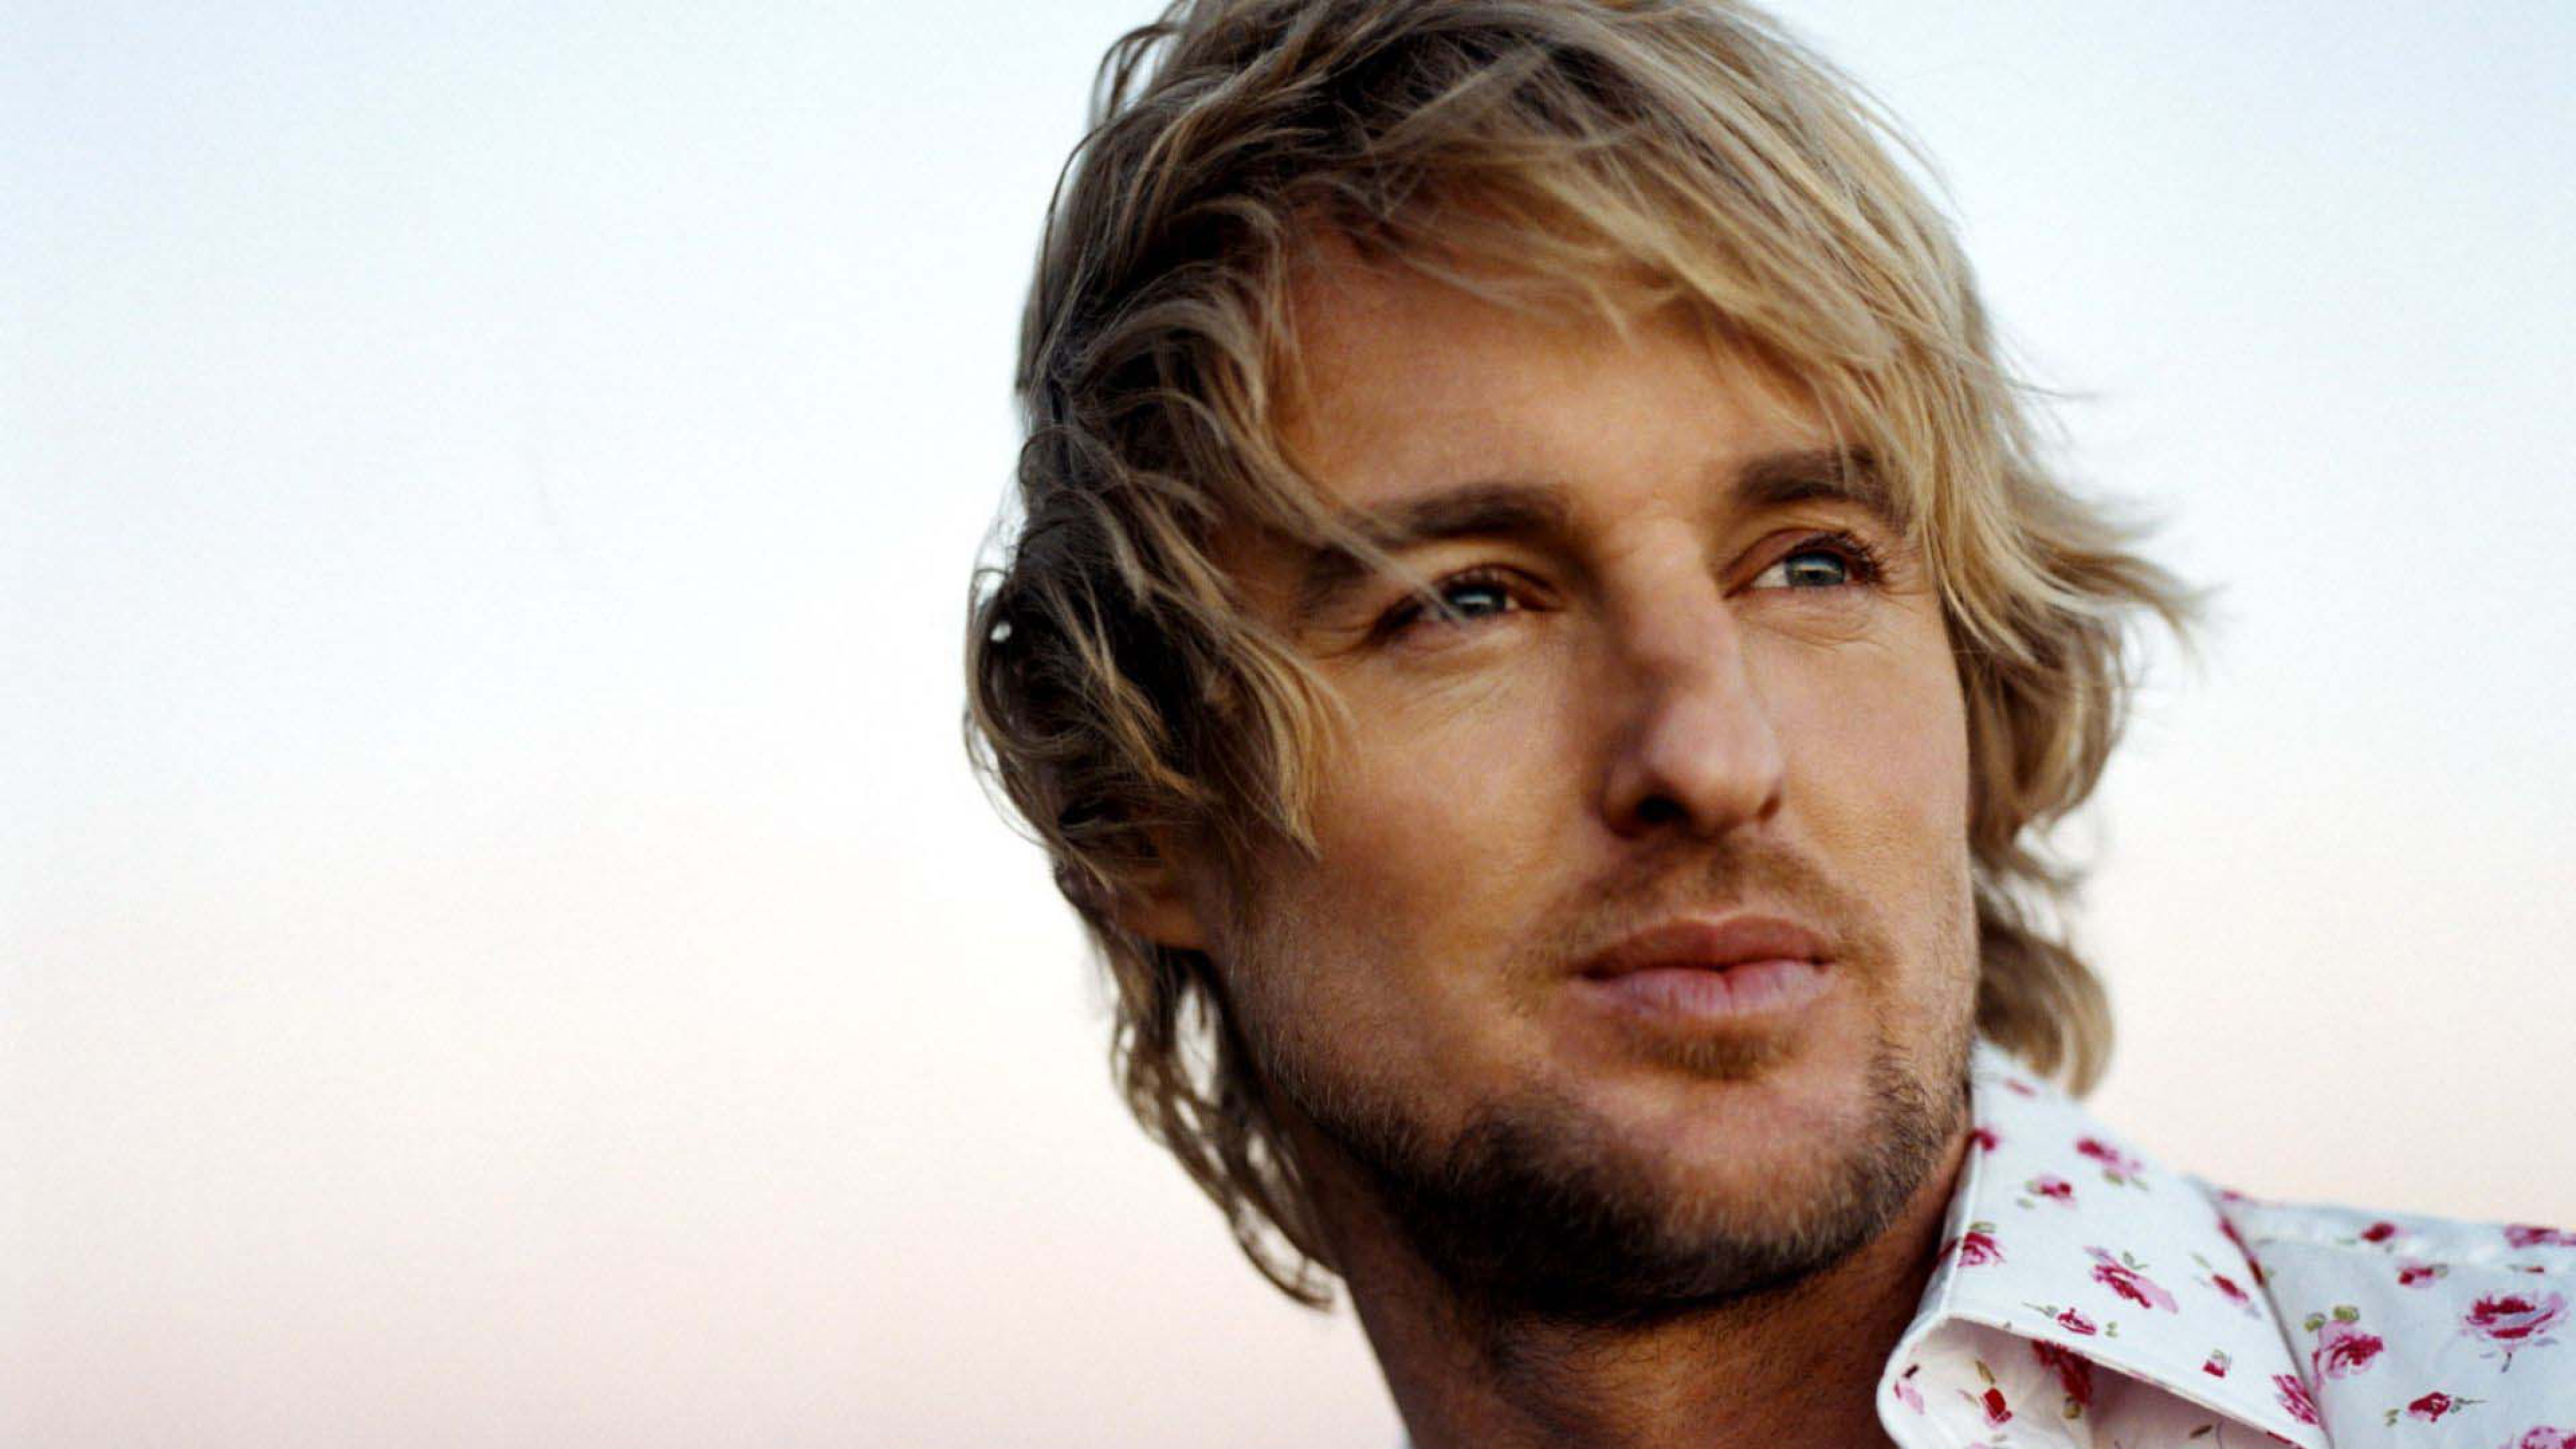 Owen Wilson Wallpapers and Background Images   stmednet 3840x2160